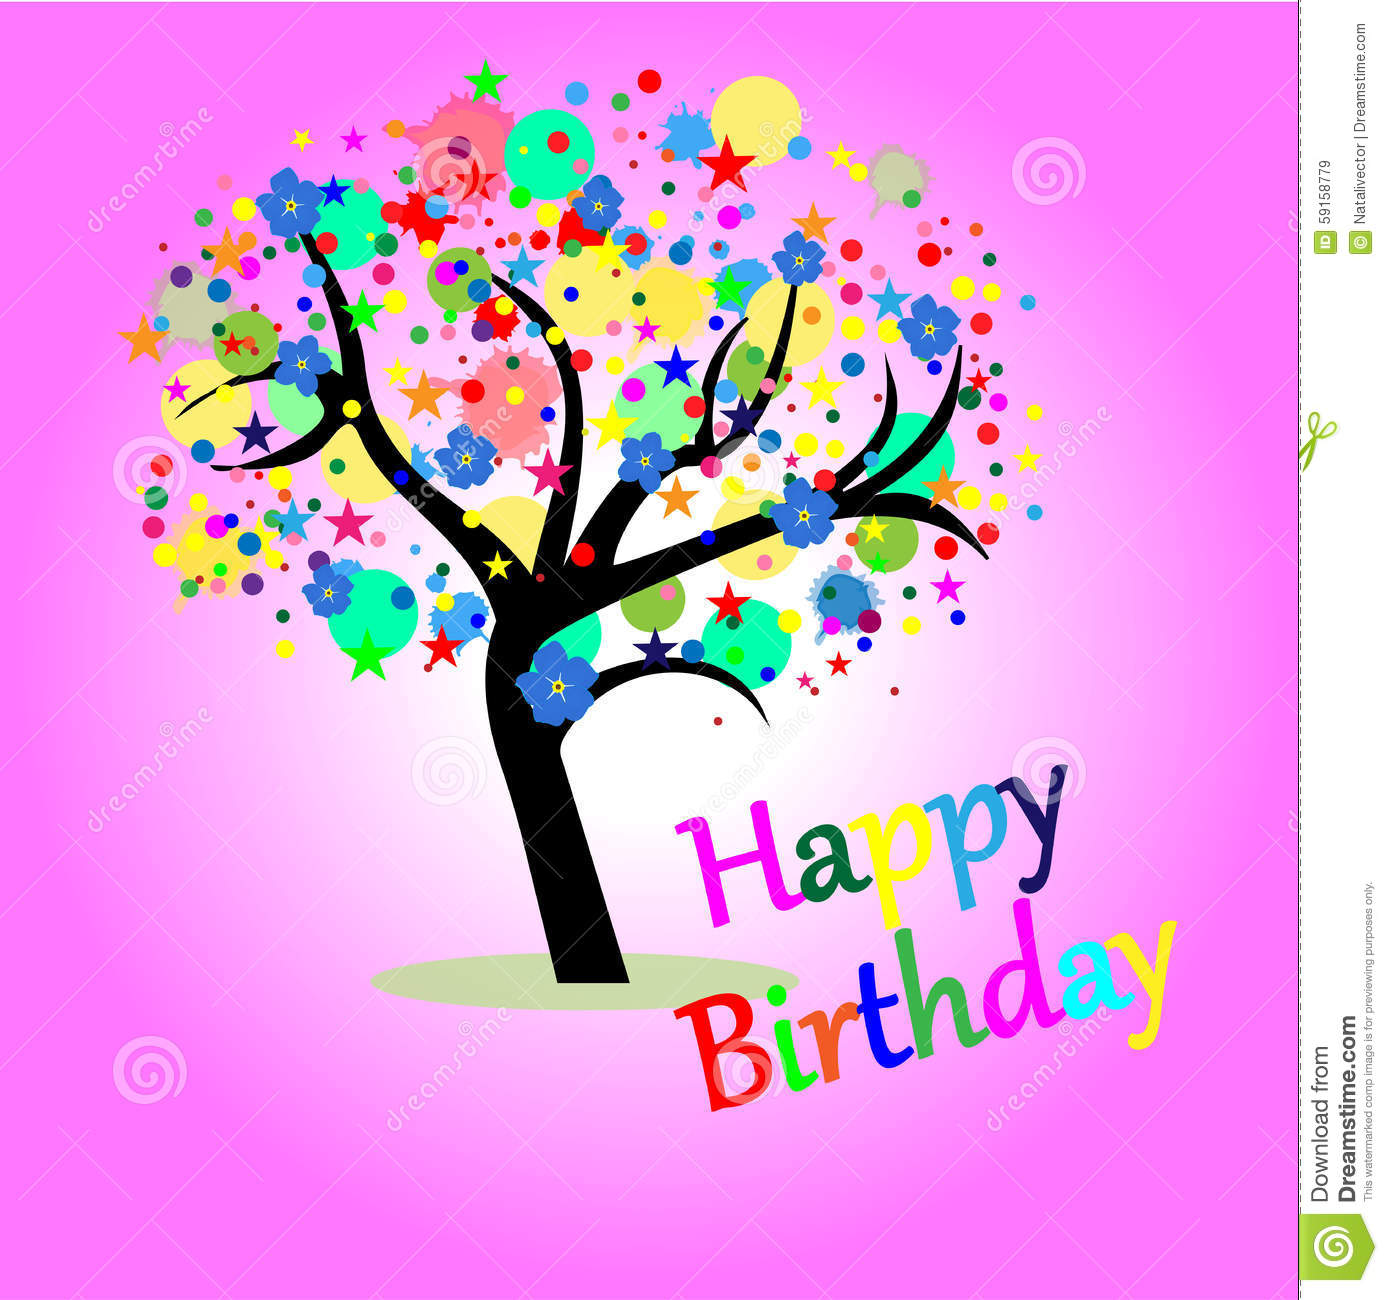 Greeting Card Happy Birthday Royalty Free Stock Images